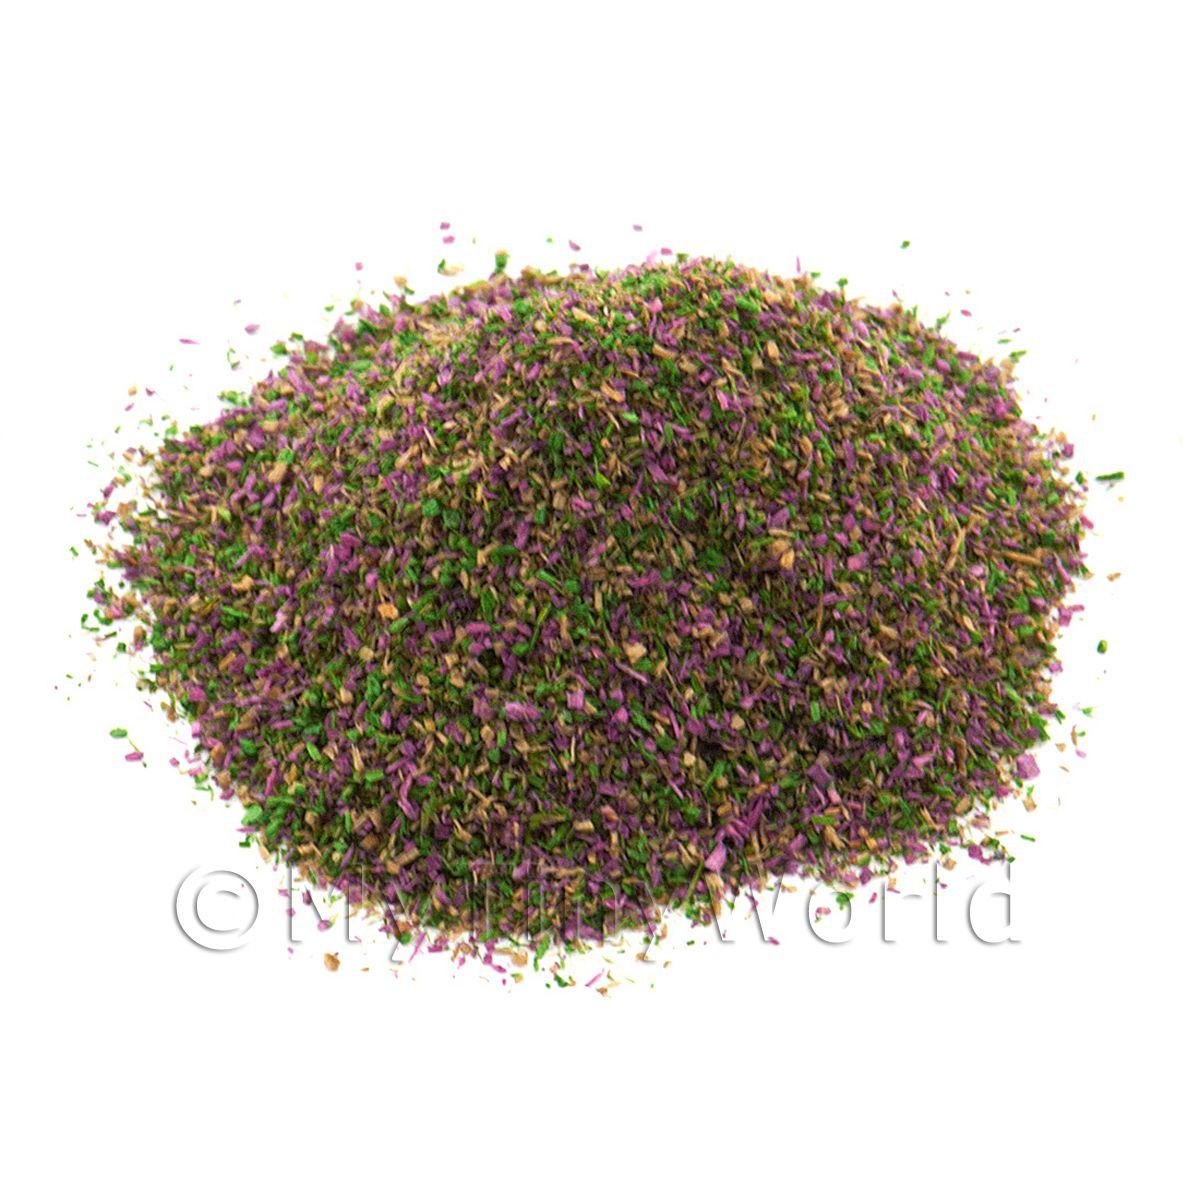 Dolls House Miniature Moorland Colour Scatter